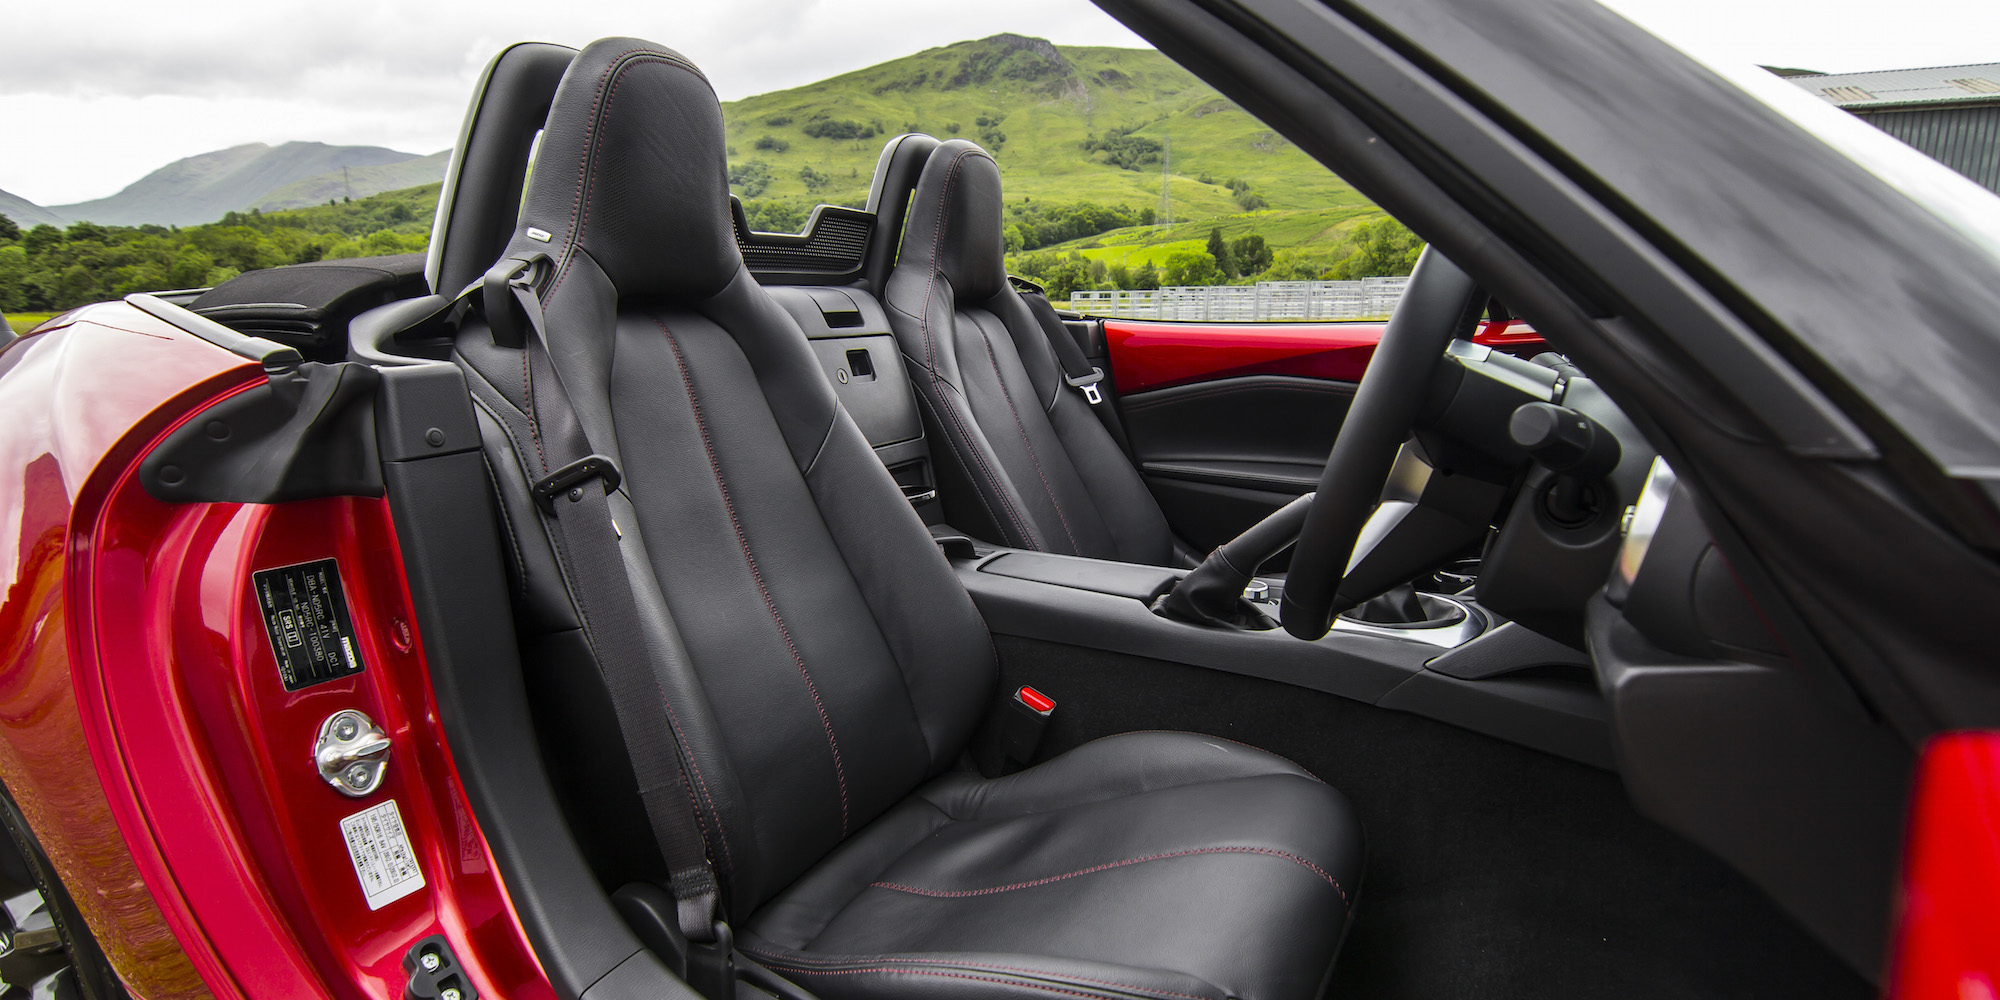 2016 Mazda Mx 5 Cockpit Seats Interior (View 14 of 31)